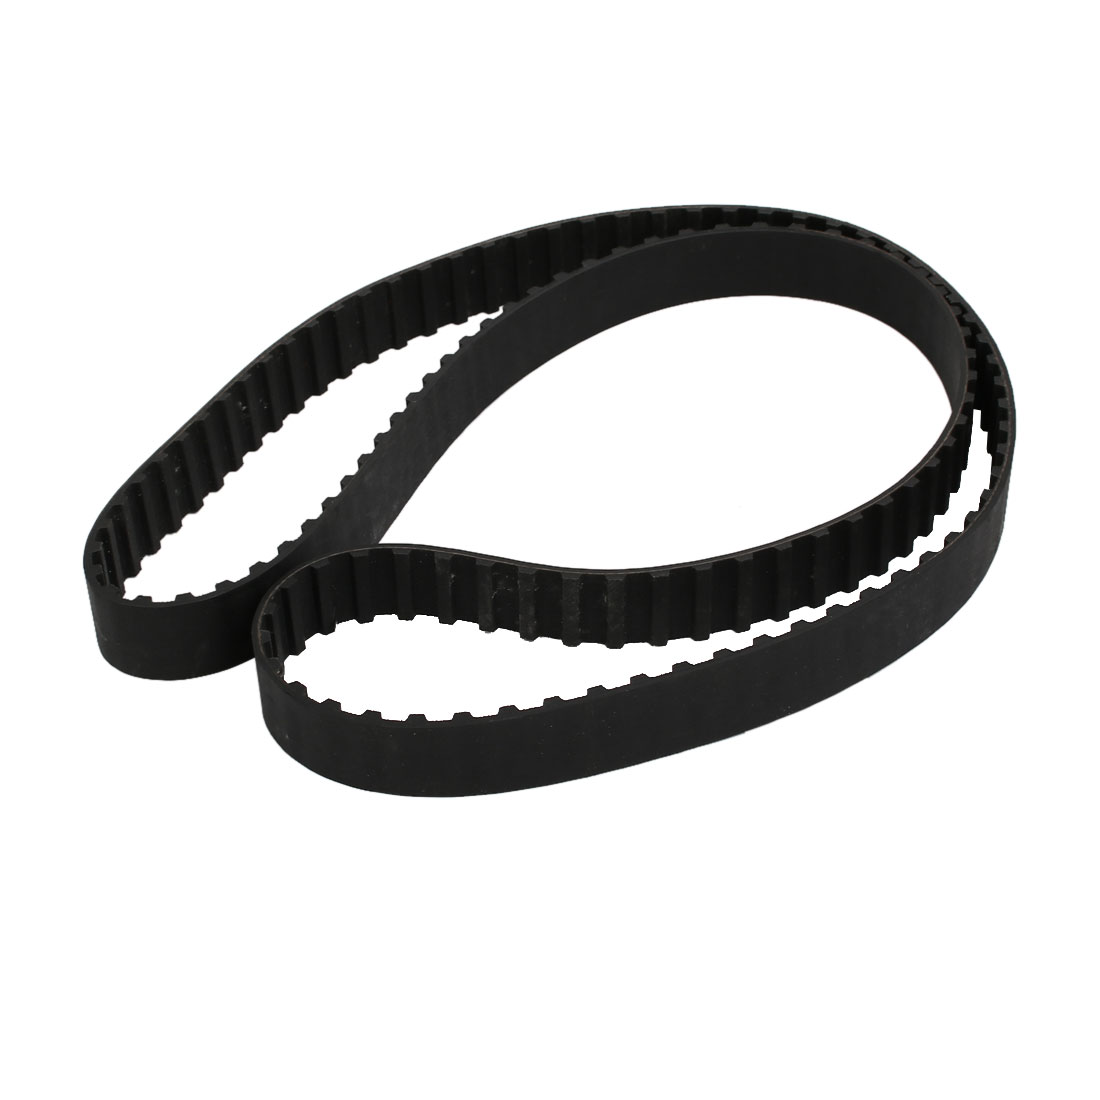 457L 122 Teeth 20mm Width 9.525mm Pitch Stepper Motor Rubber Timing Belt Black